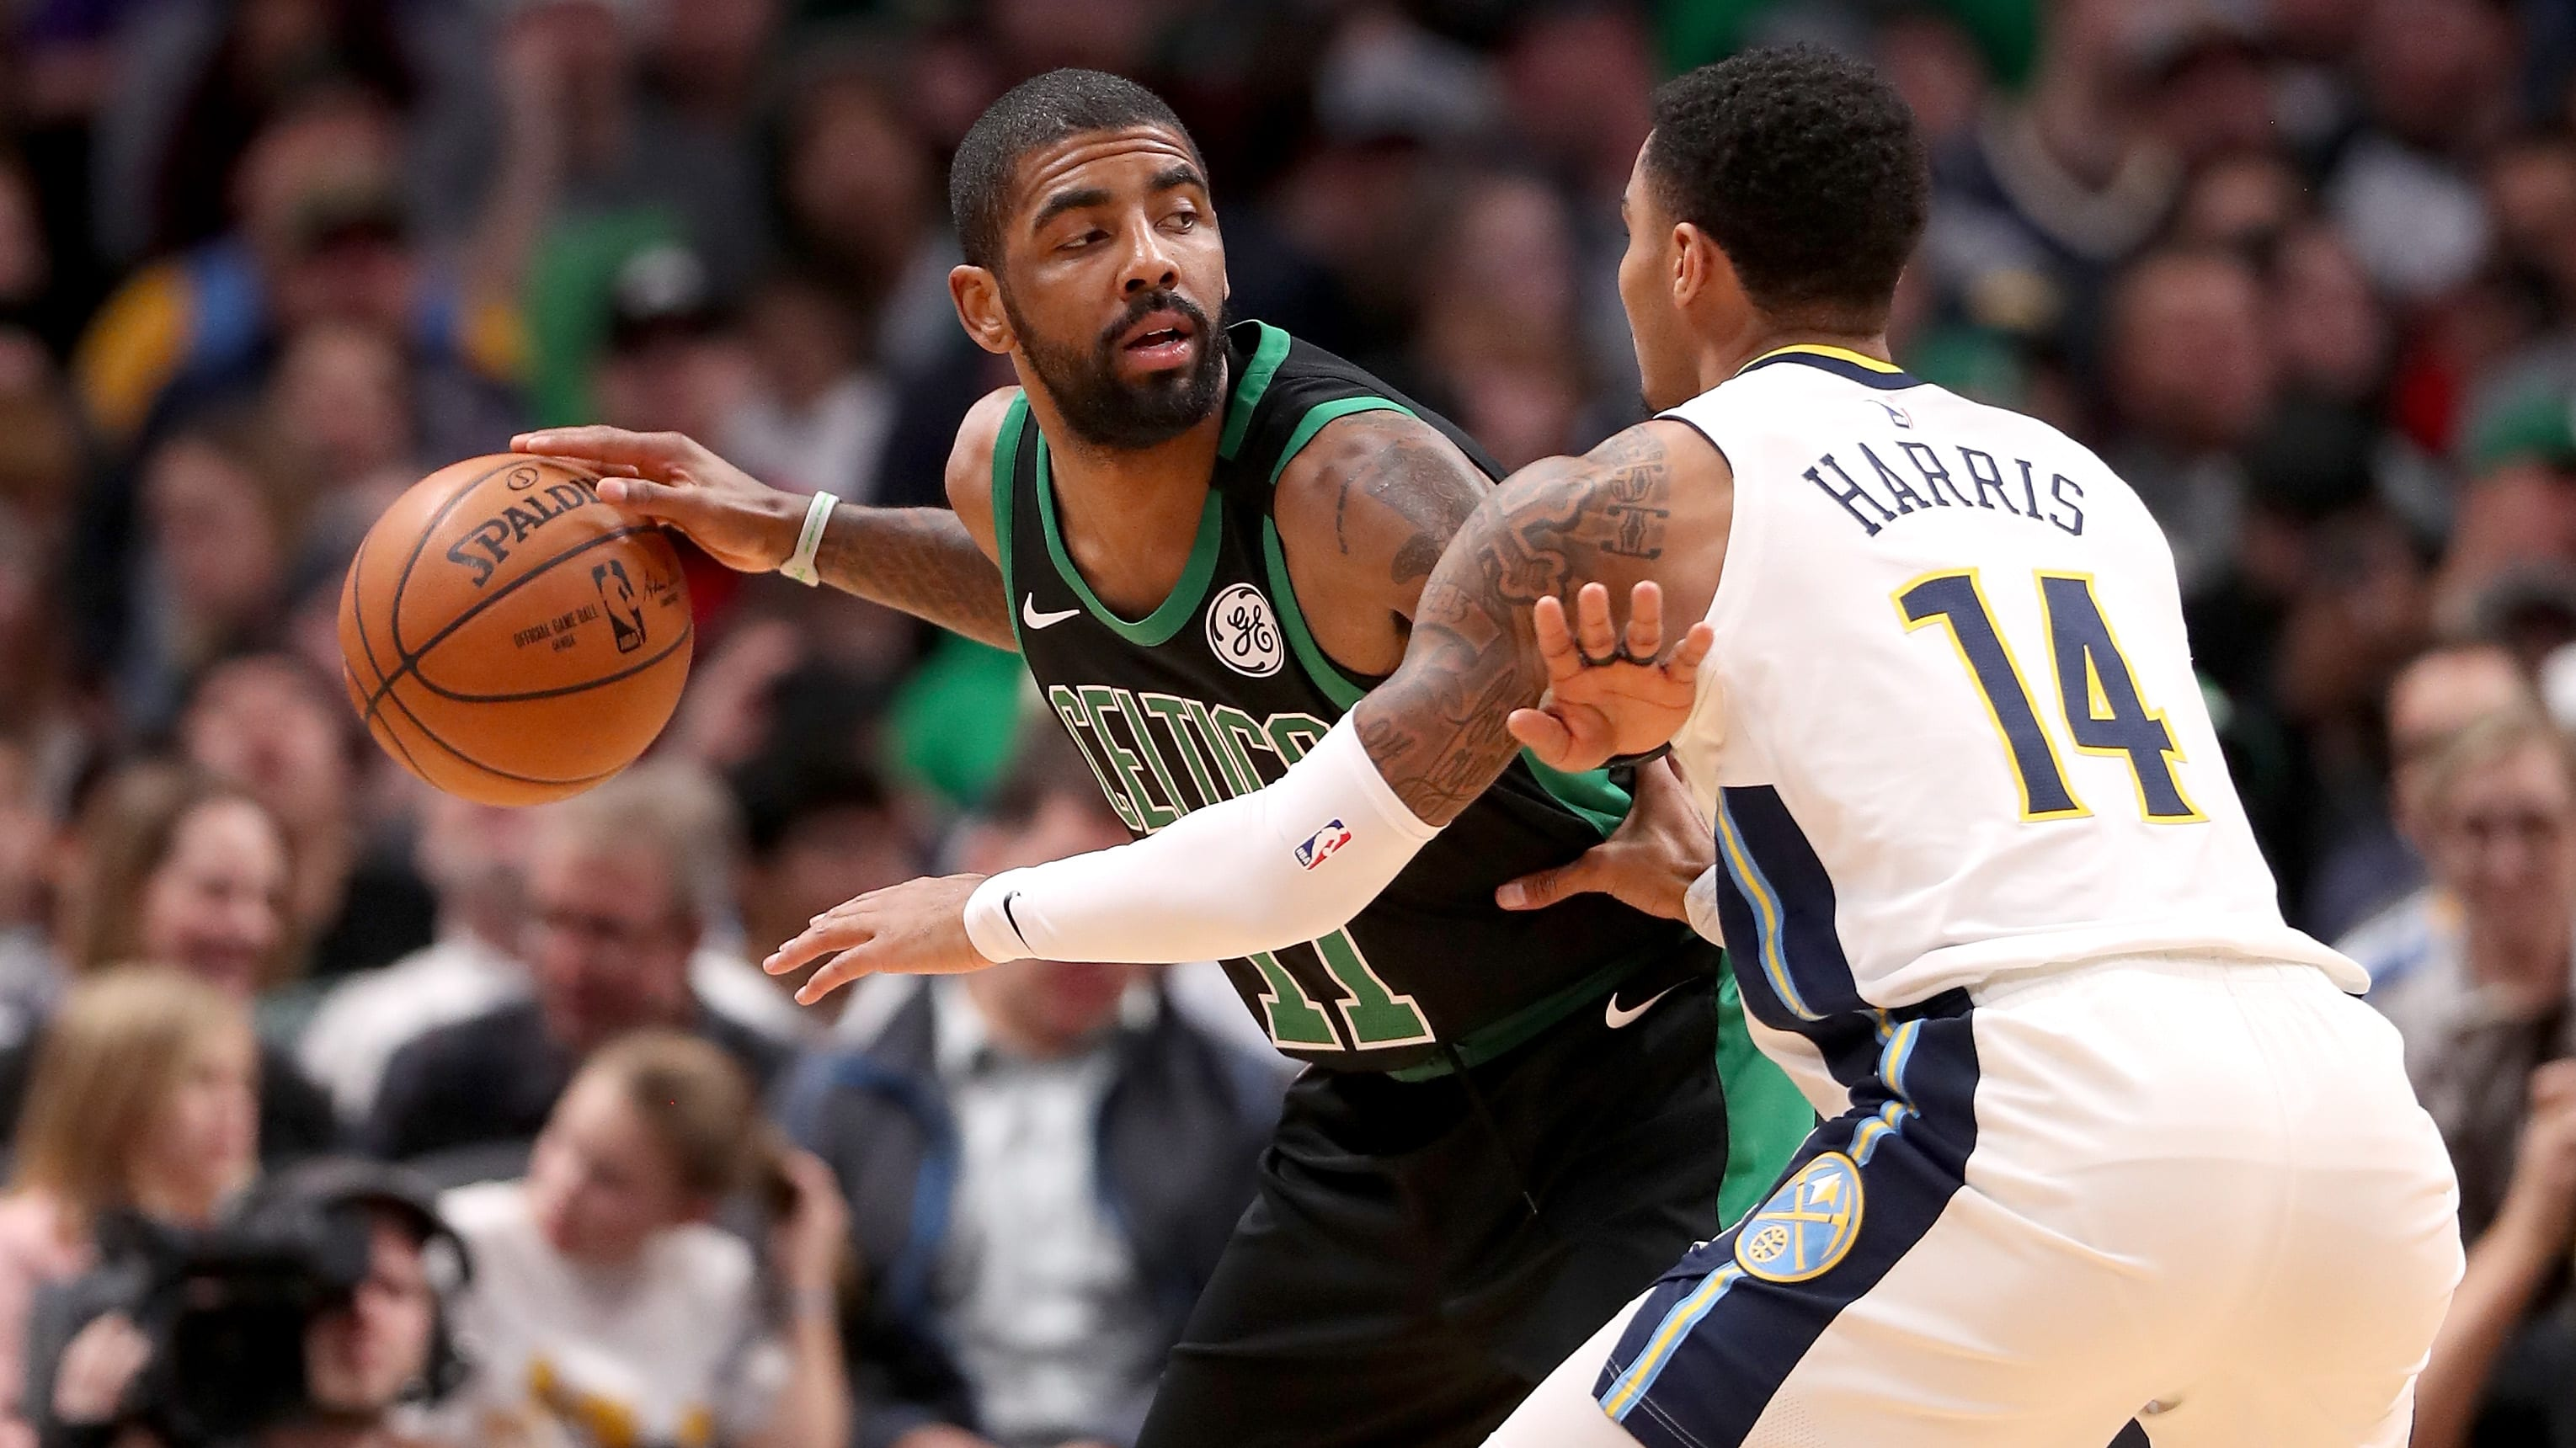 DENVER, CO - JANUARY 29:  Kyrie Irving #11 of the Boston Celtics is guarded by Gary Harris #14 of the Denver Nuggets at the Pepsi Center on January 29, 2018 in Denver, Colorado. NOTE TO USER: User expressly acknowledges and agrees that, by downloading and or using this photograph, User is consenting to the terms and conditions of the Getty Images License Agreement.  (Photo by Matthew Stockman/Getty Images)